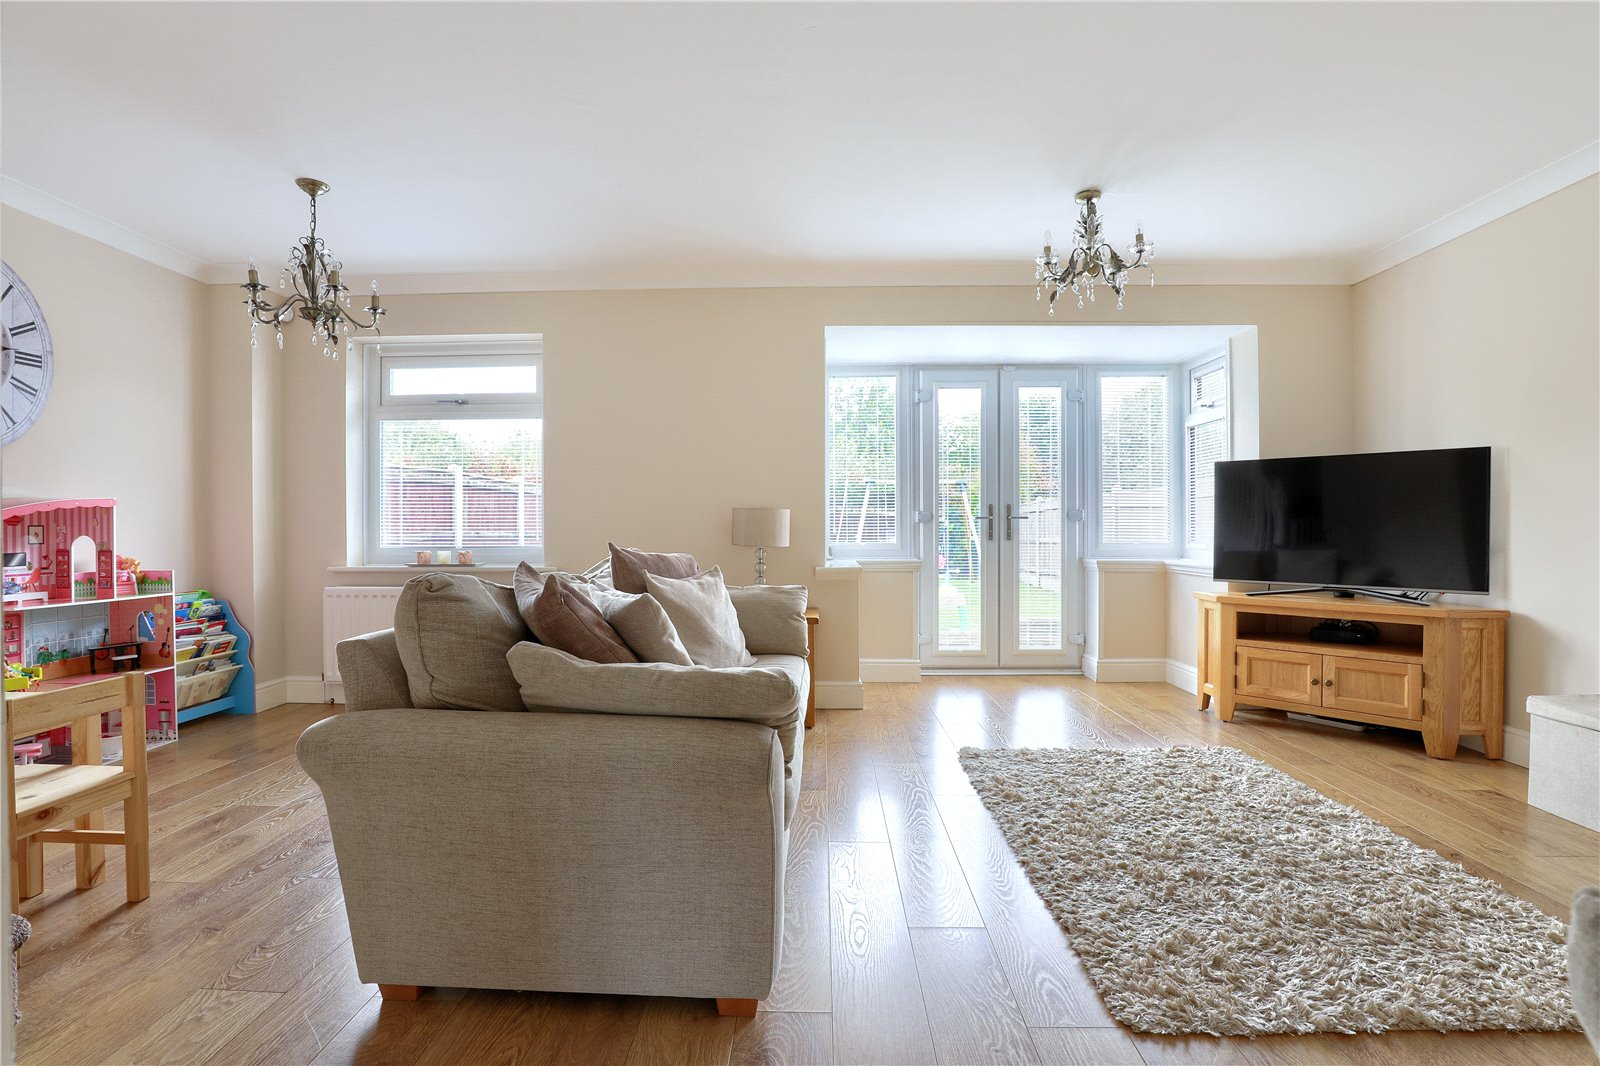 3 bed house for sale in Foxgloves, Coulby Newham 2